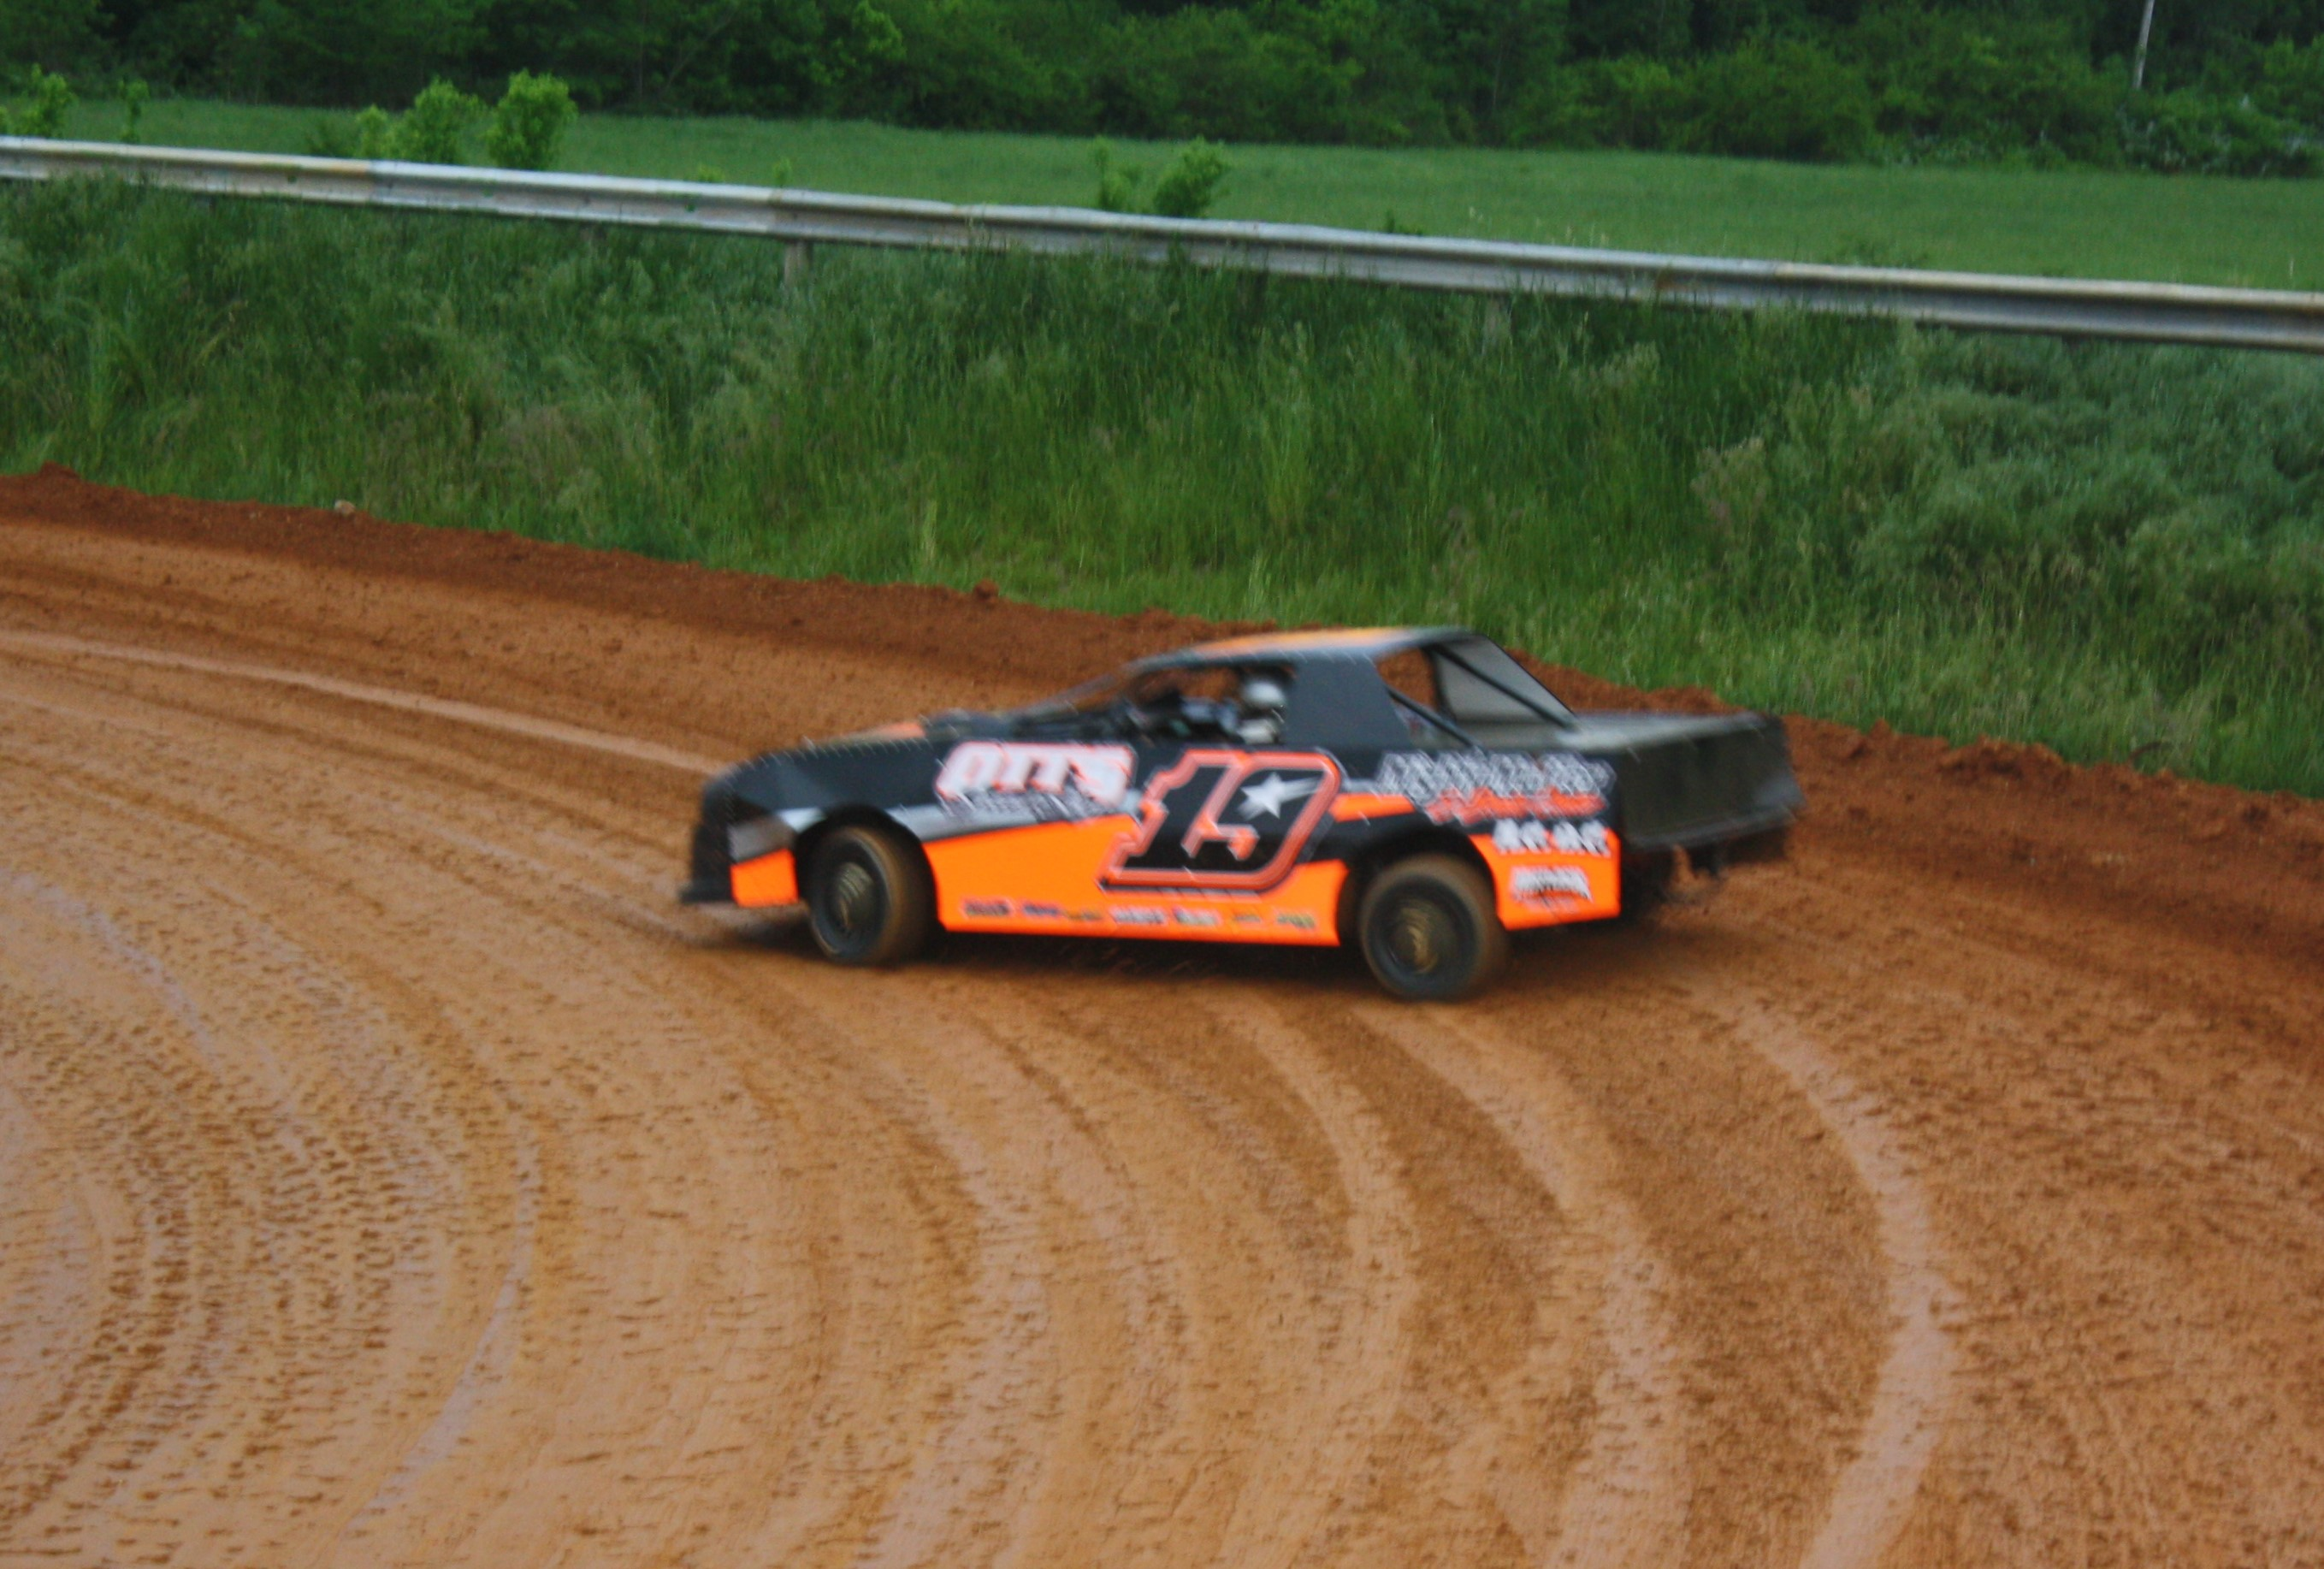 Veteran east Tennessee drivers offer initial impressions of